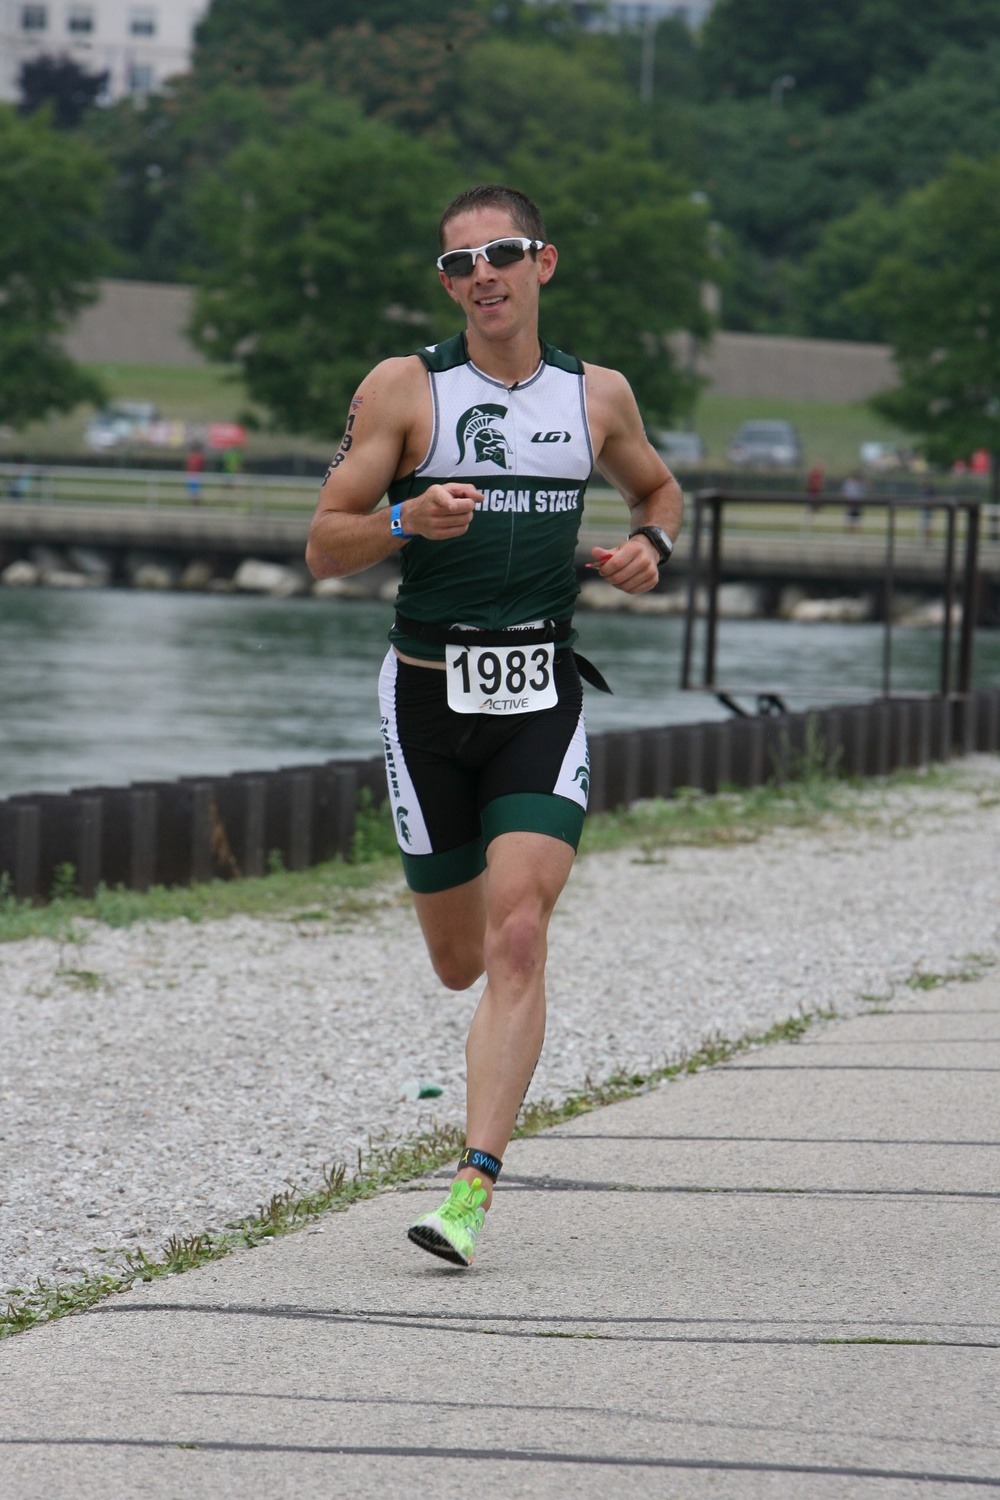 2015 USAT AGNC Todd Run3.jpeg